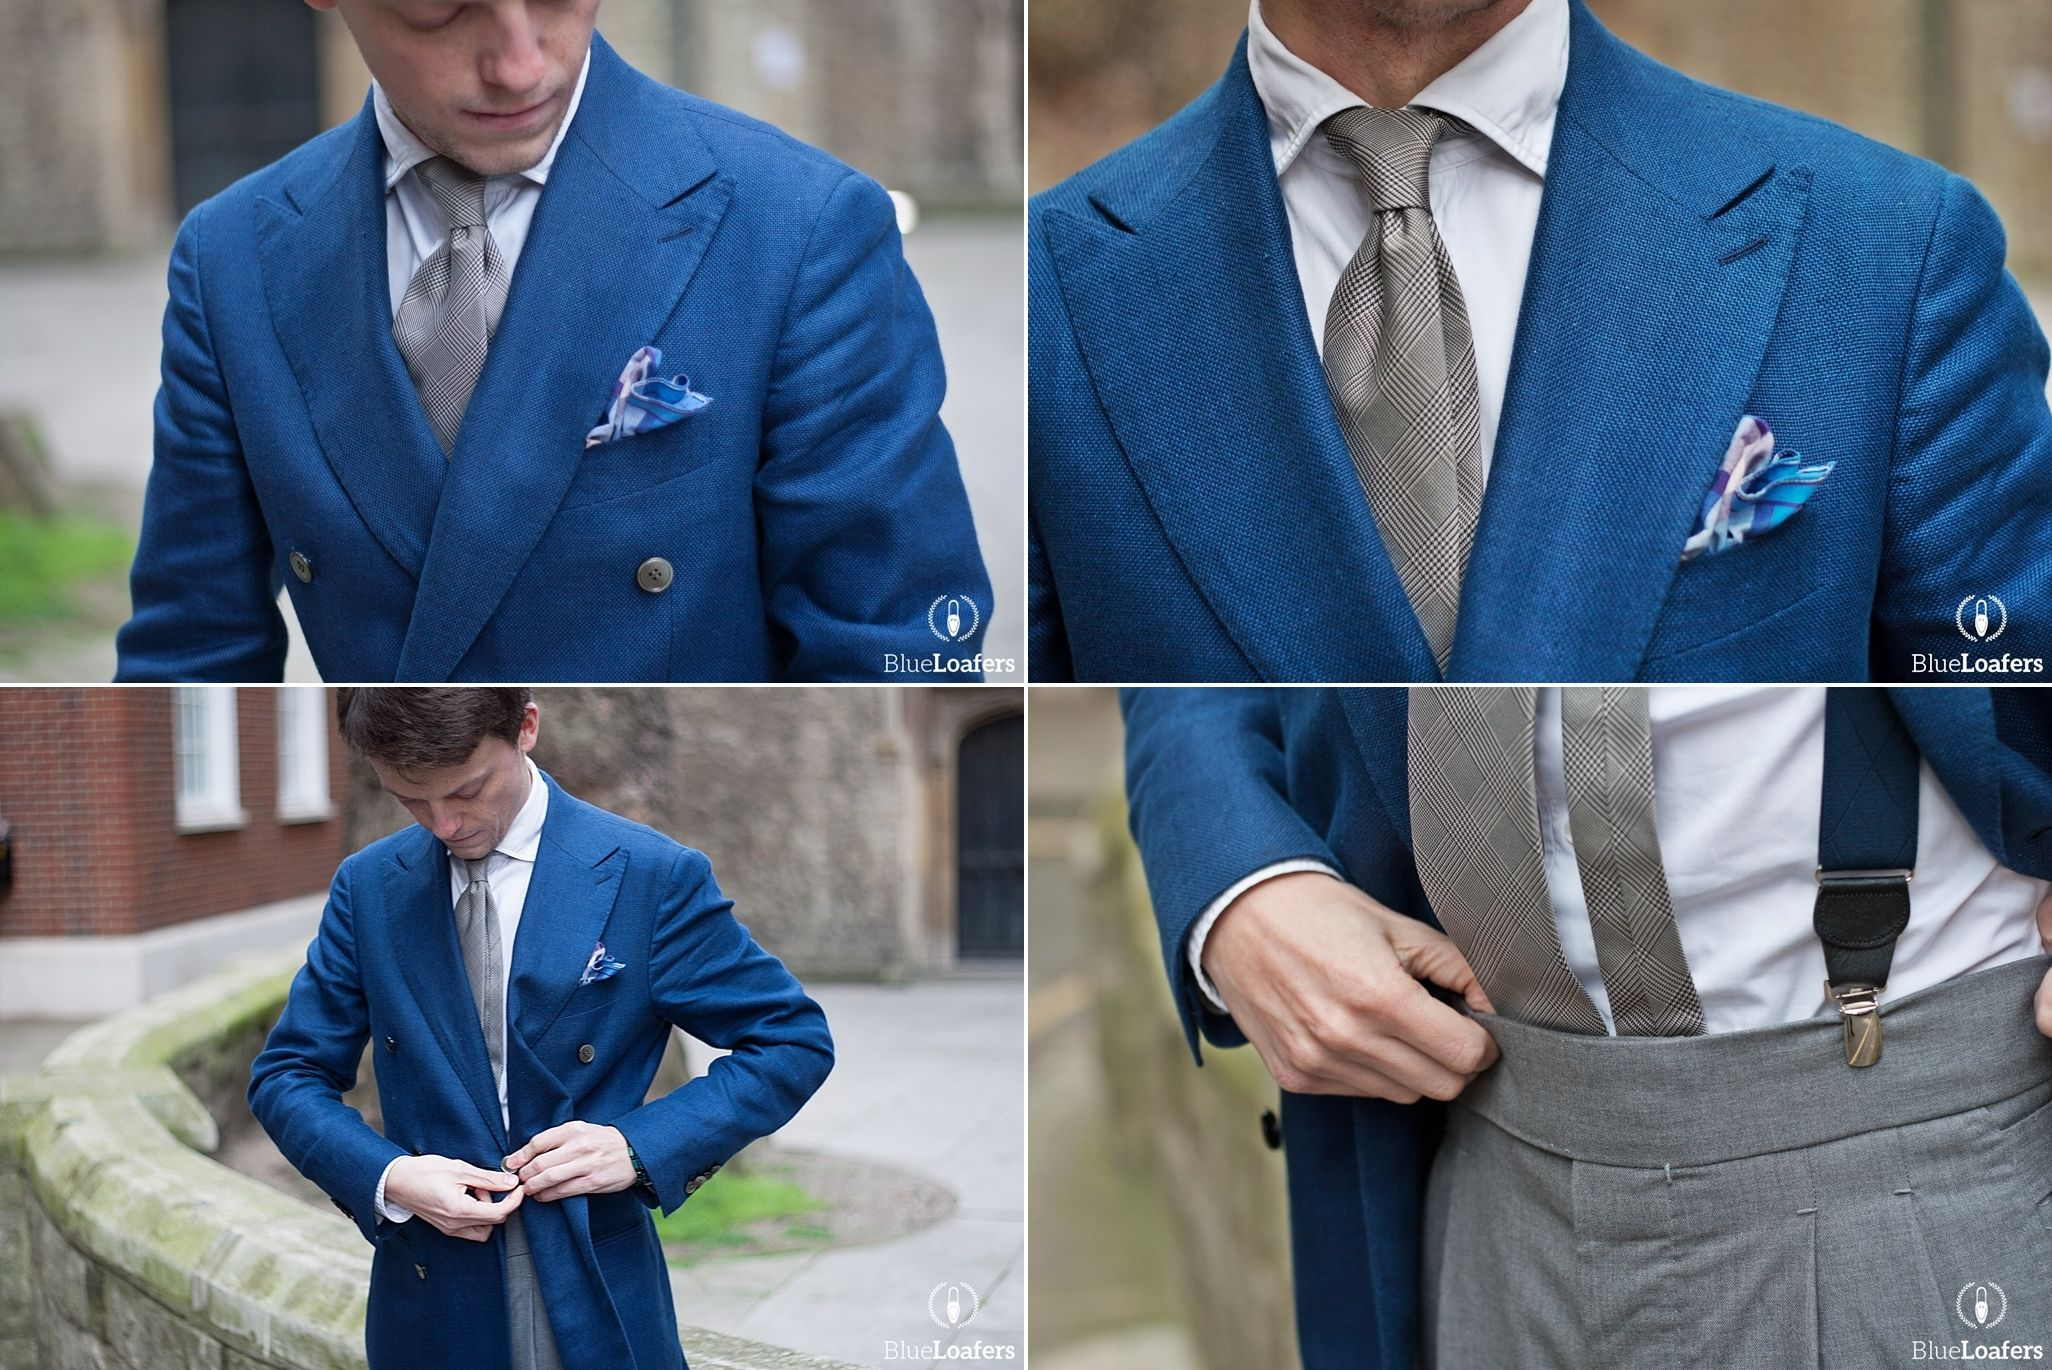 17 Best images about Suits / Jackets on Pinterest | Bespoke, Navy ...